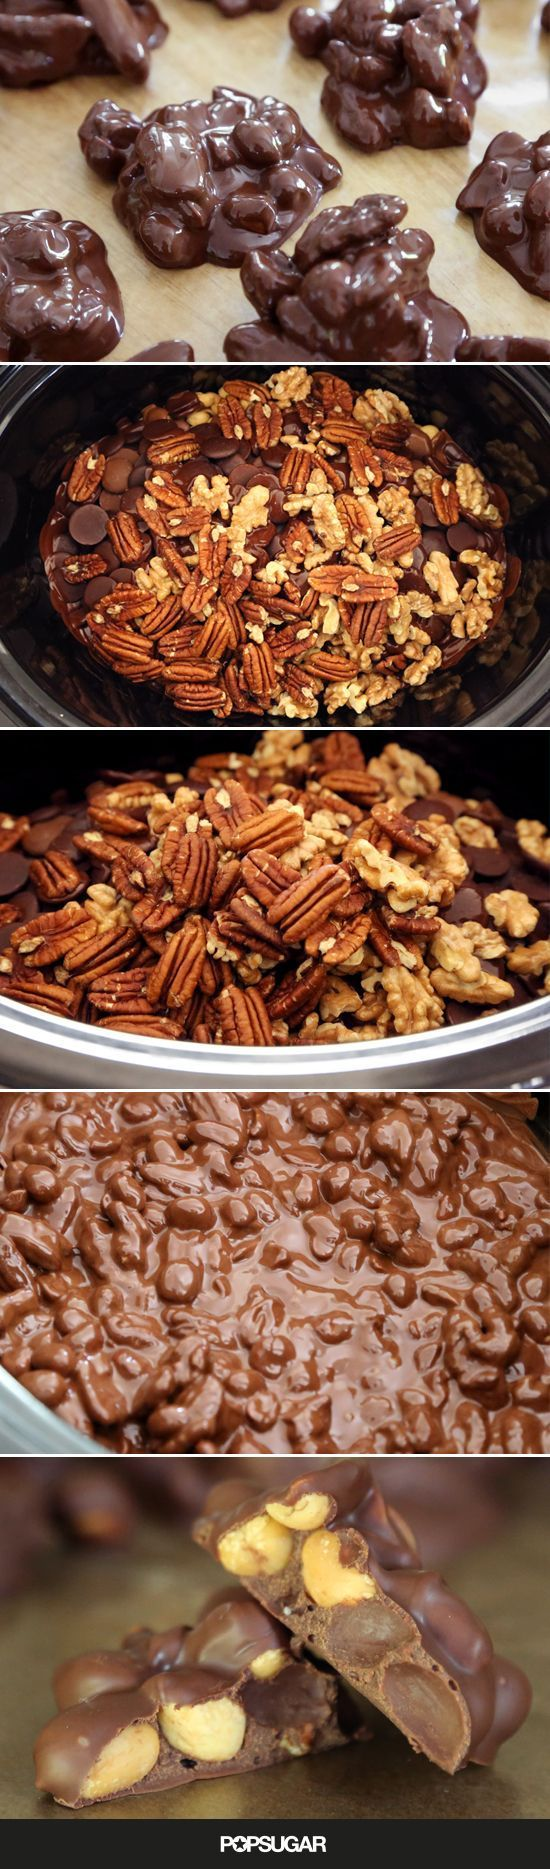 Best 25+ Crock pot candy ideas on Pinterest | Cinnamon sugar ...